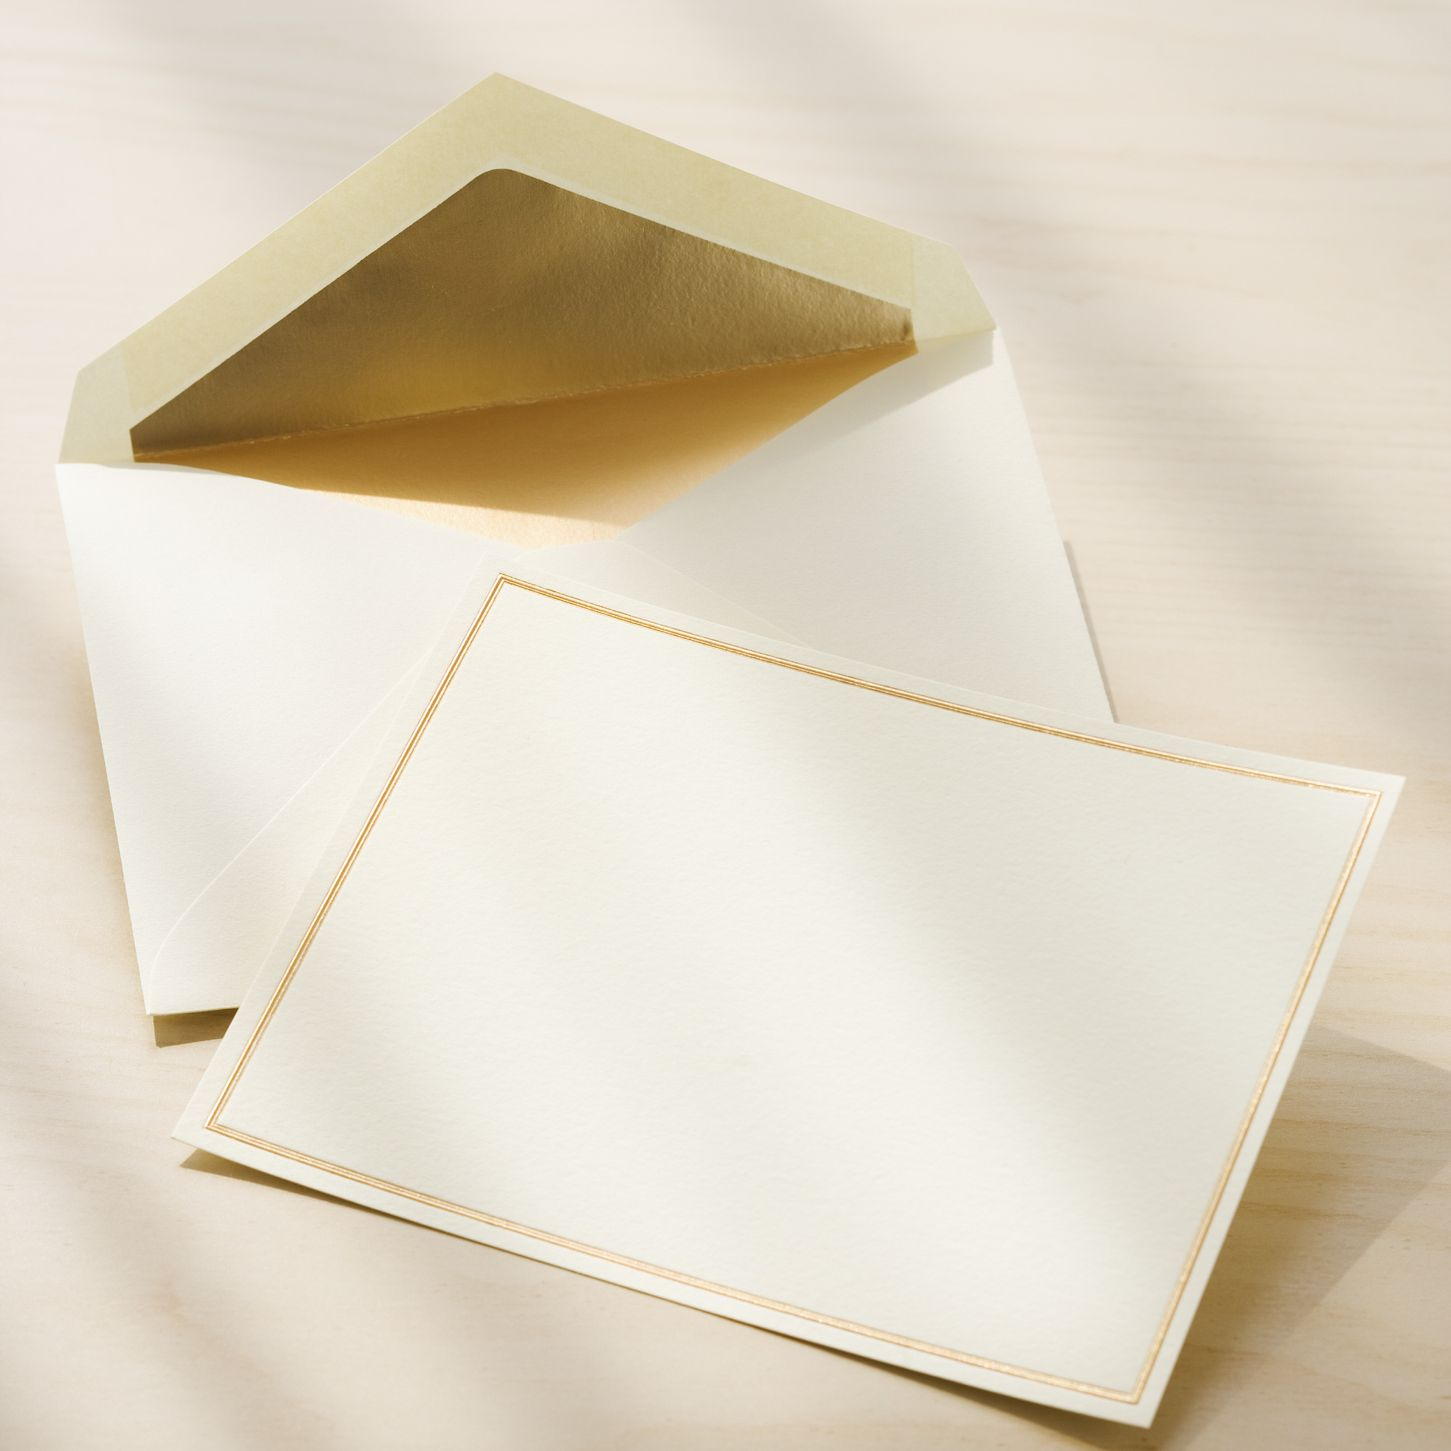 Lovely blank card and envelope